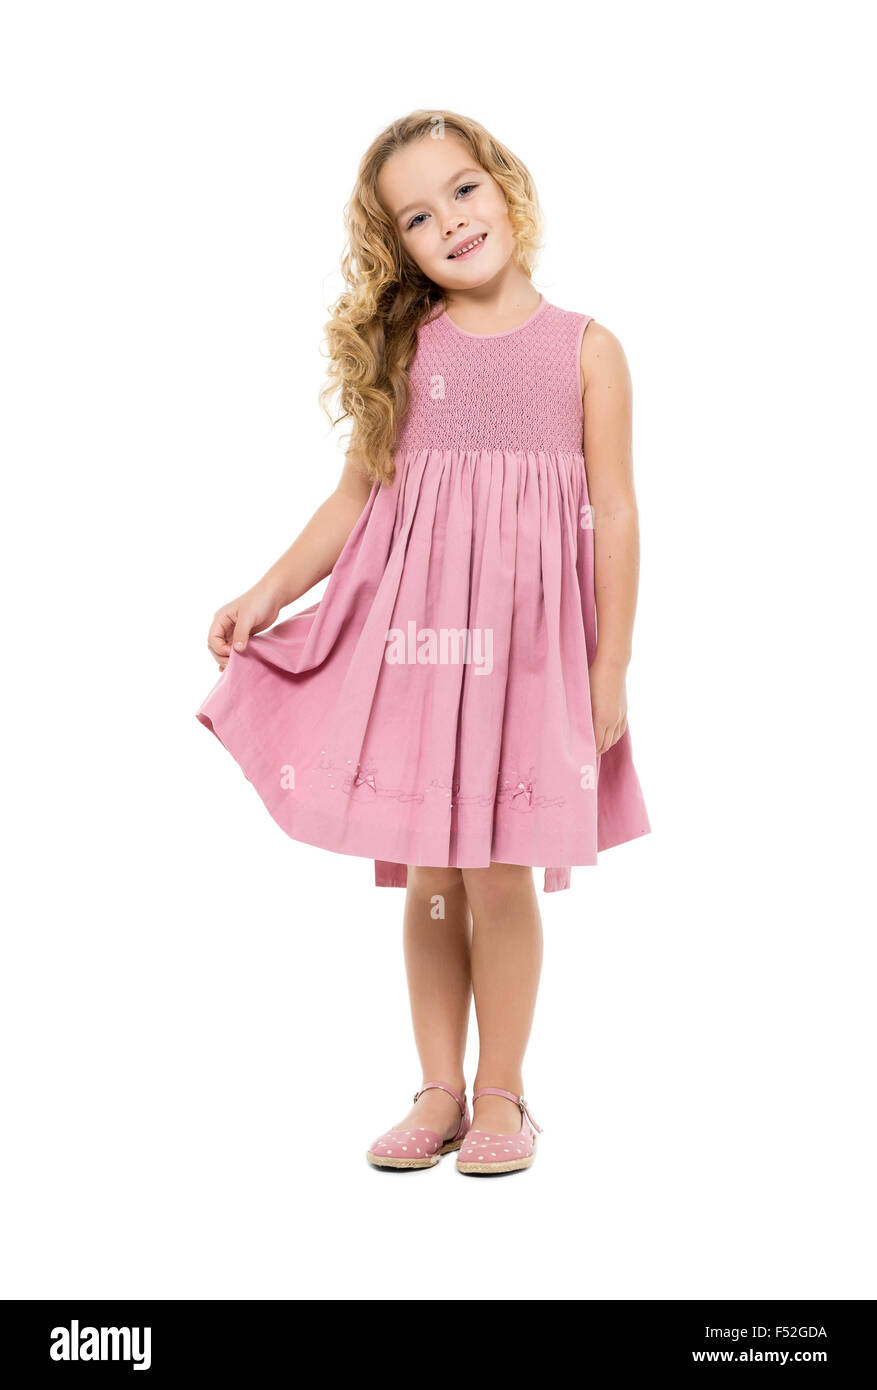 92a5ab45264 Danseuse En Robe Rose Photos   Danseuse En Robe Rose Images - Alamy